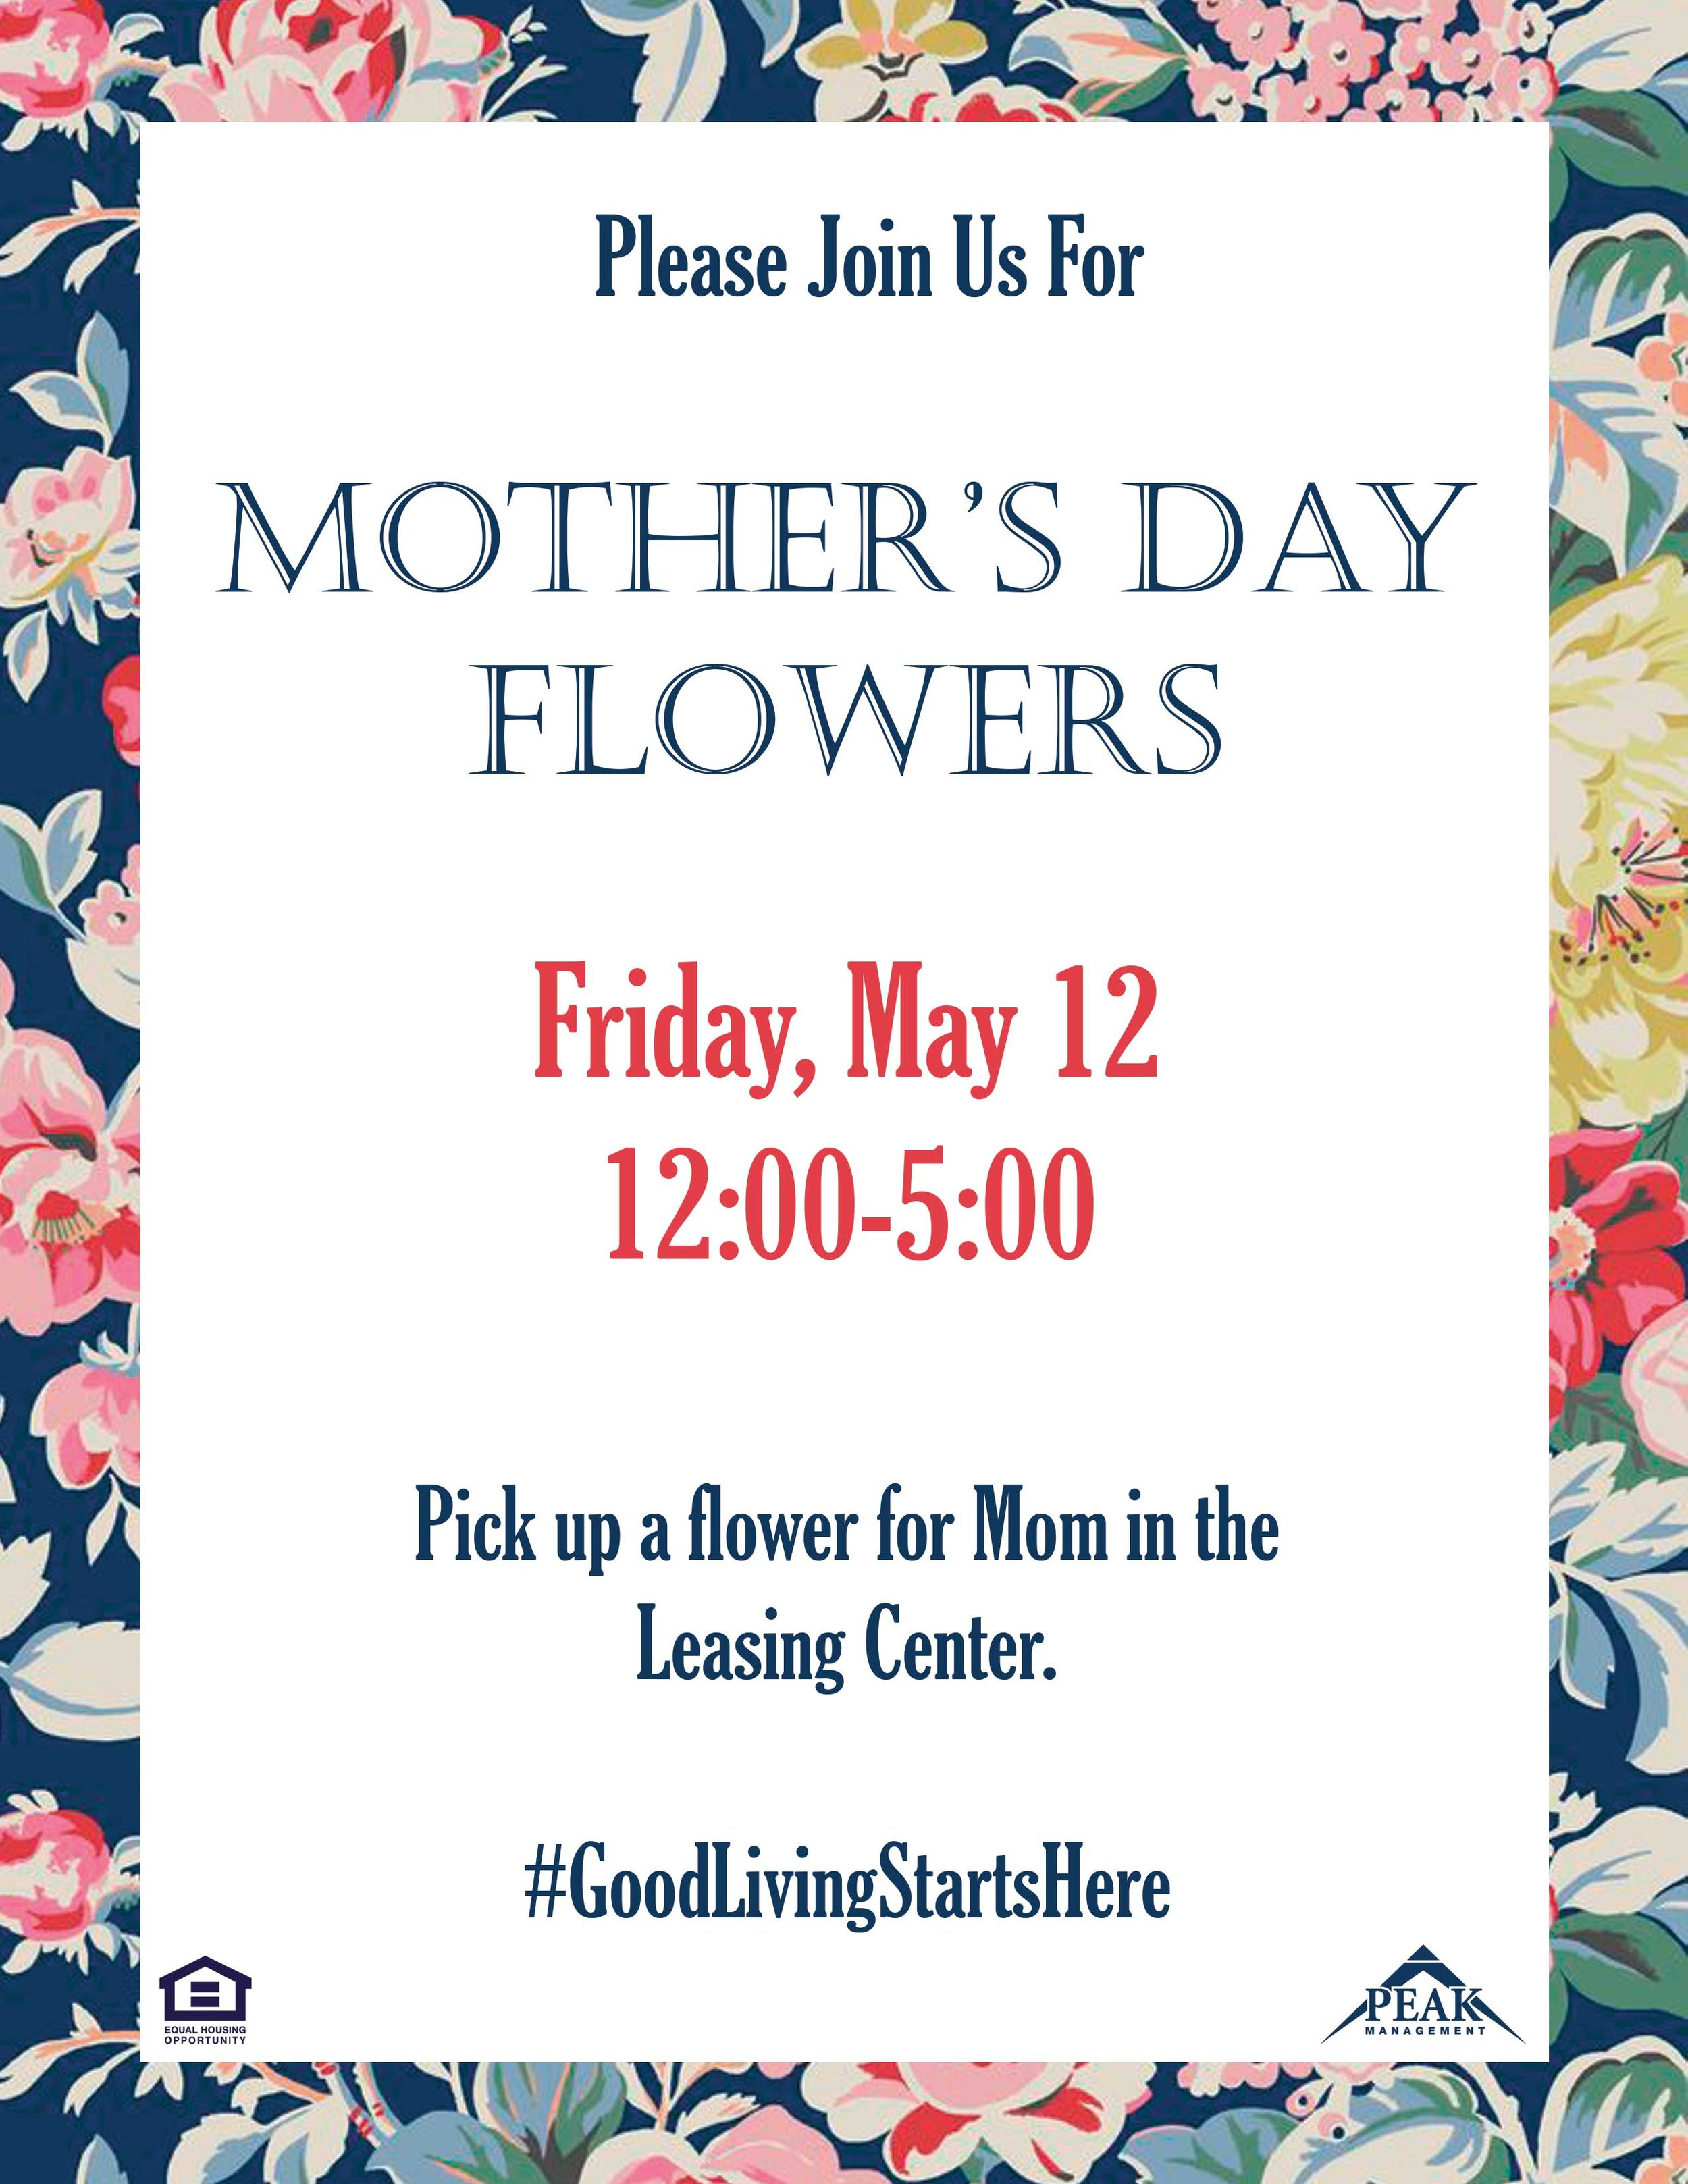 Flowers for Mom at Fox Run Apartments in Edgewood, MD